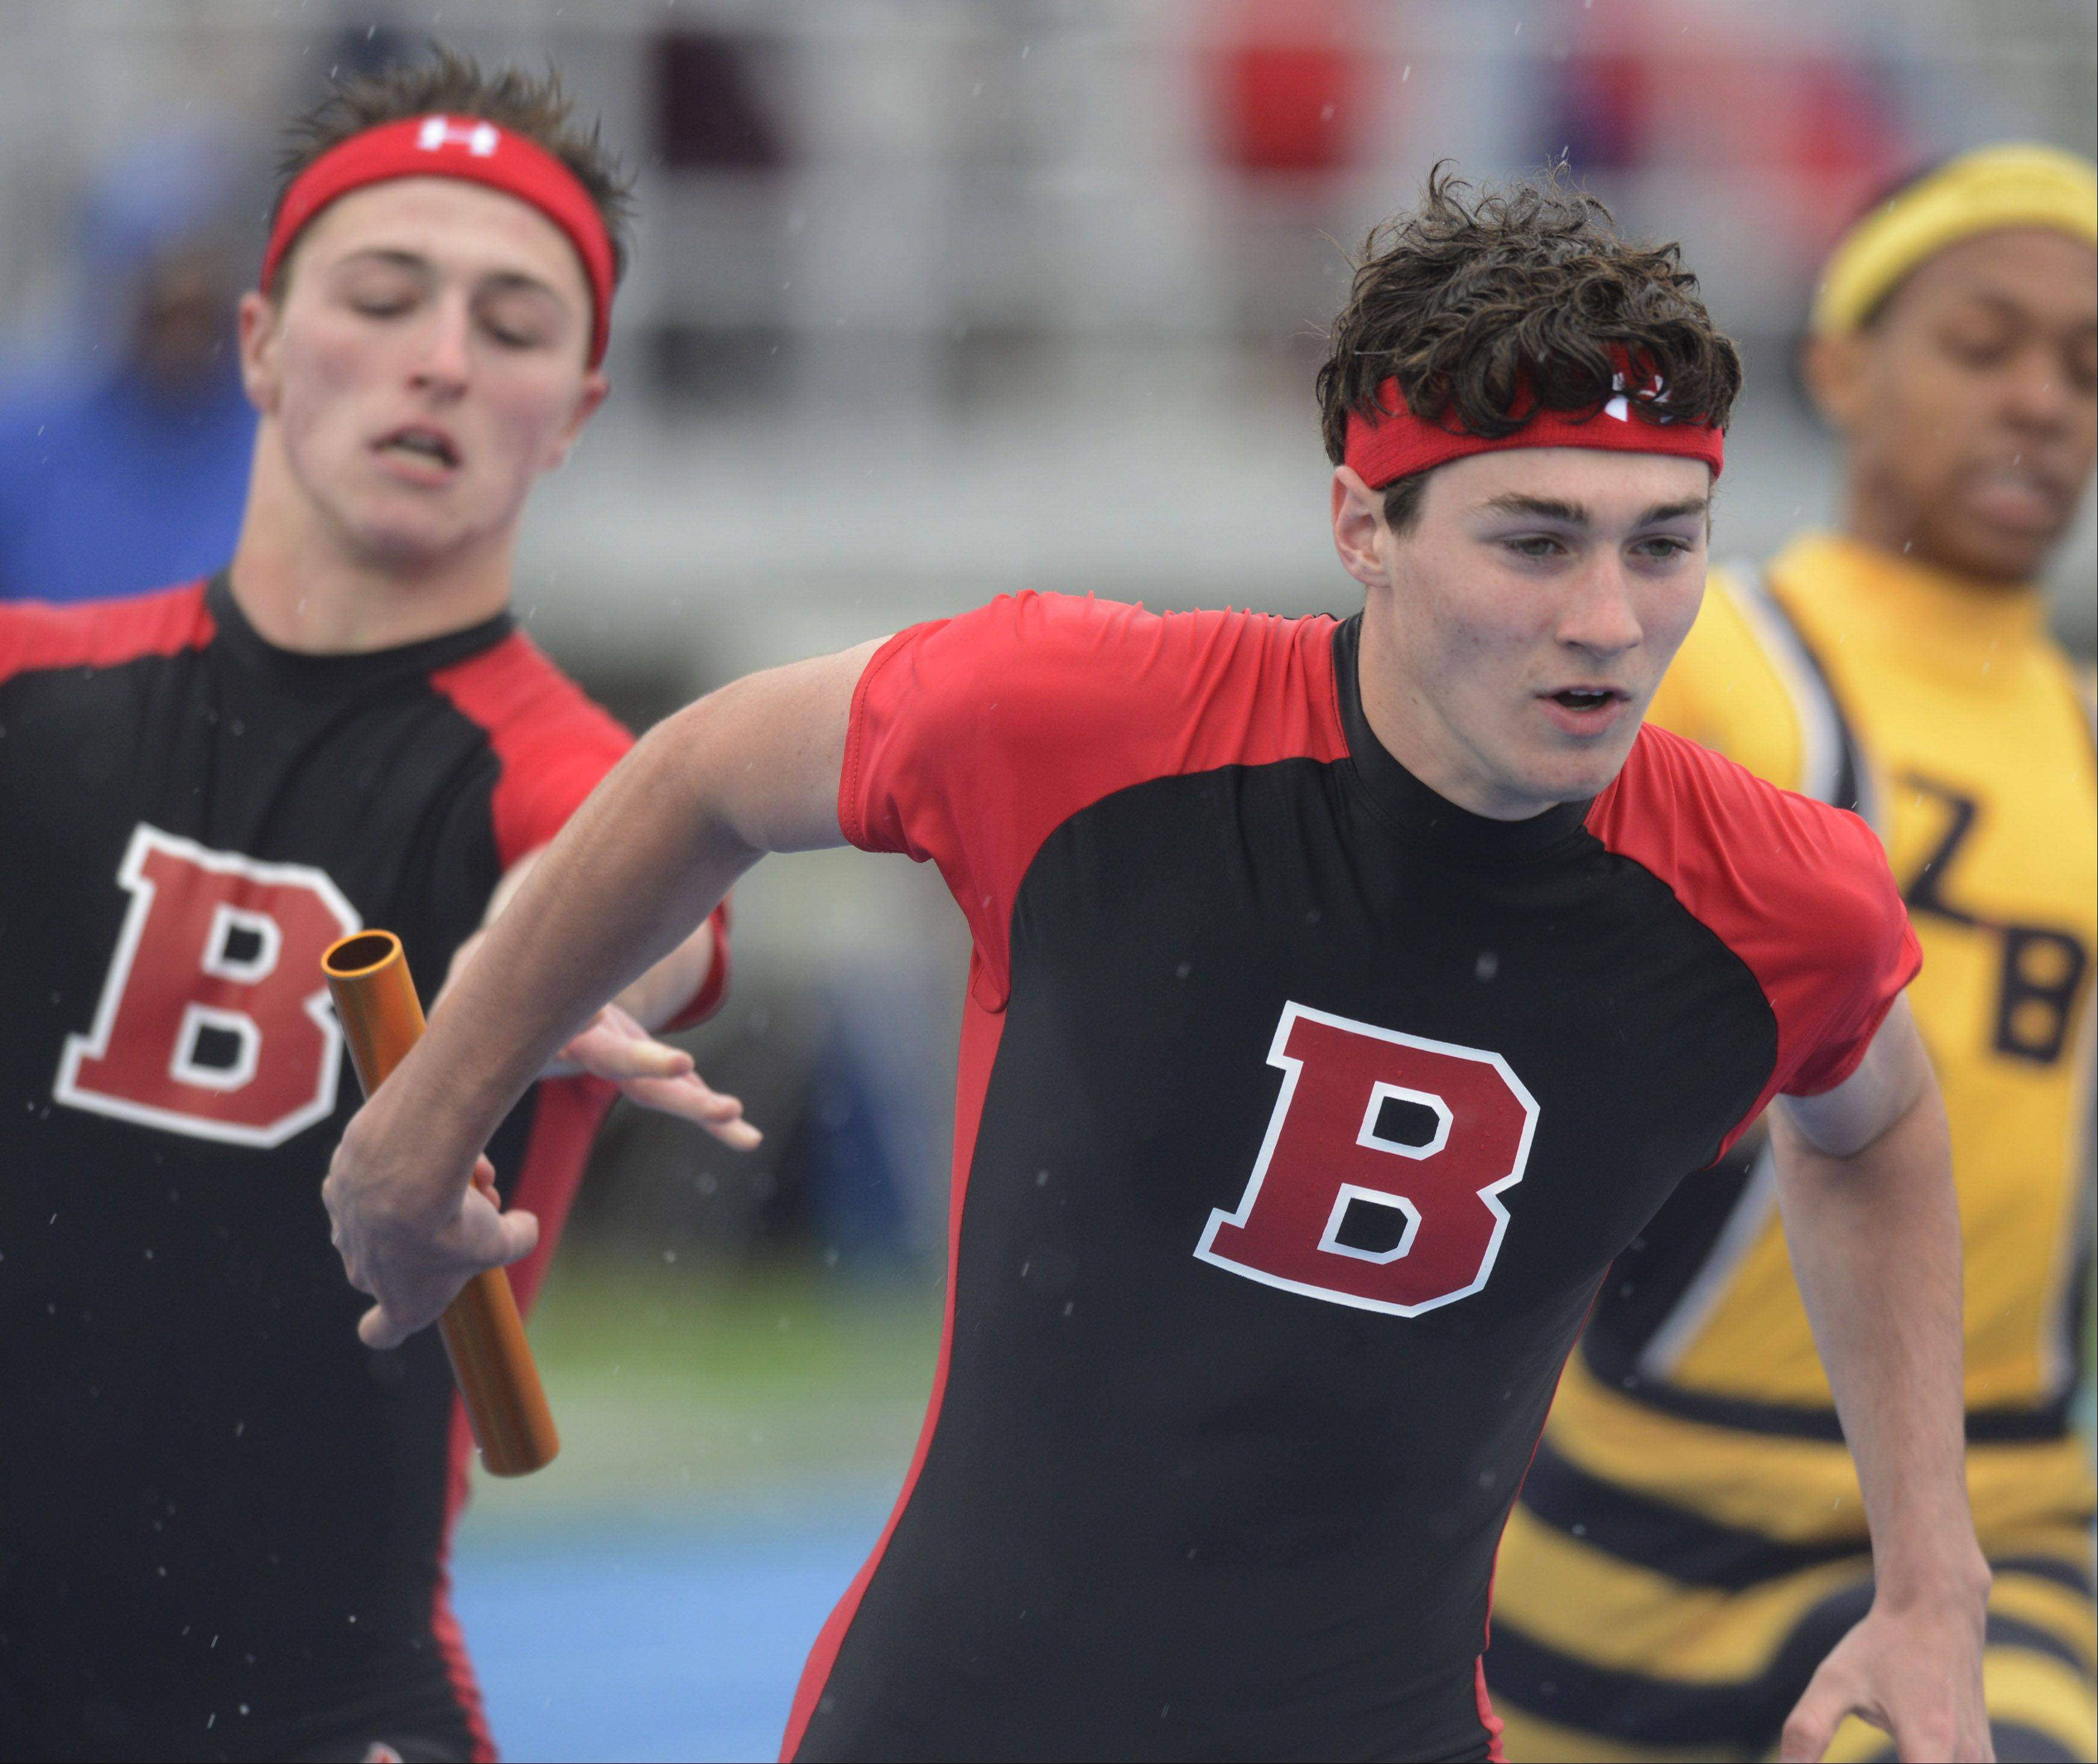 Barrington's Brandon Melynchuk takes the baton from teammate JP Brooks in the Class 3A 4x200-meter relay during the boys track state finals in Charleston on Saturday.